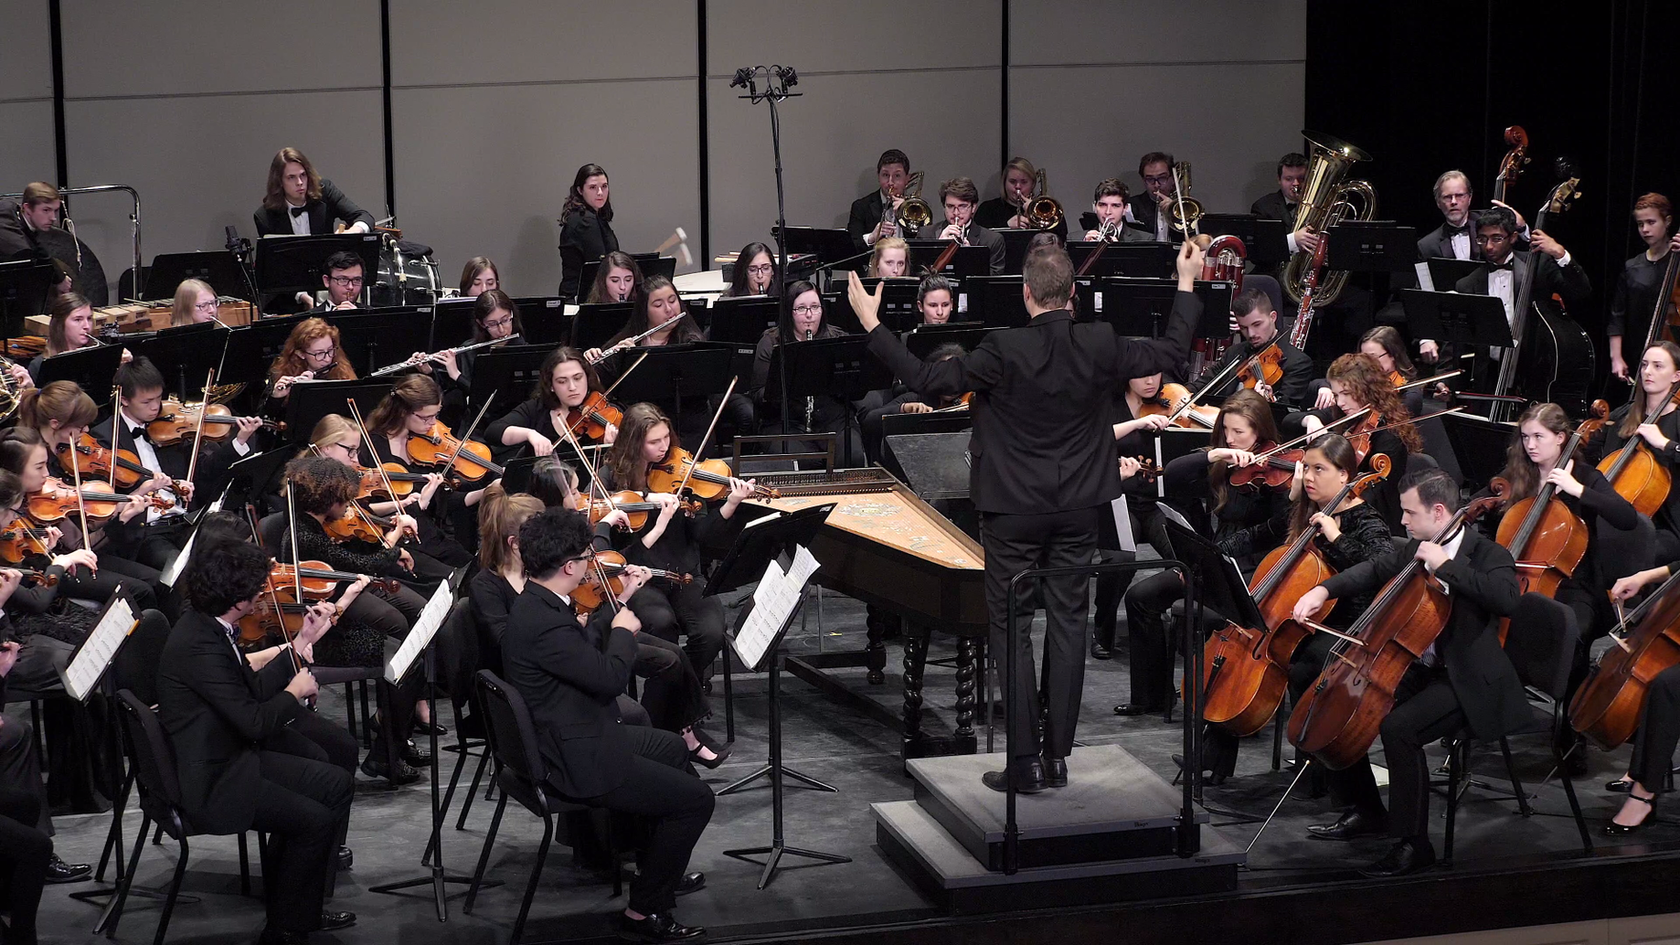 The University of Delaware Symphony Orchestra